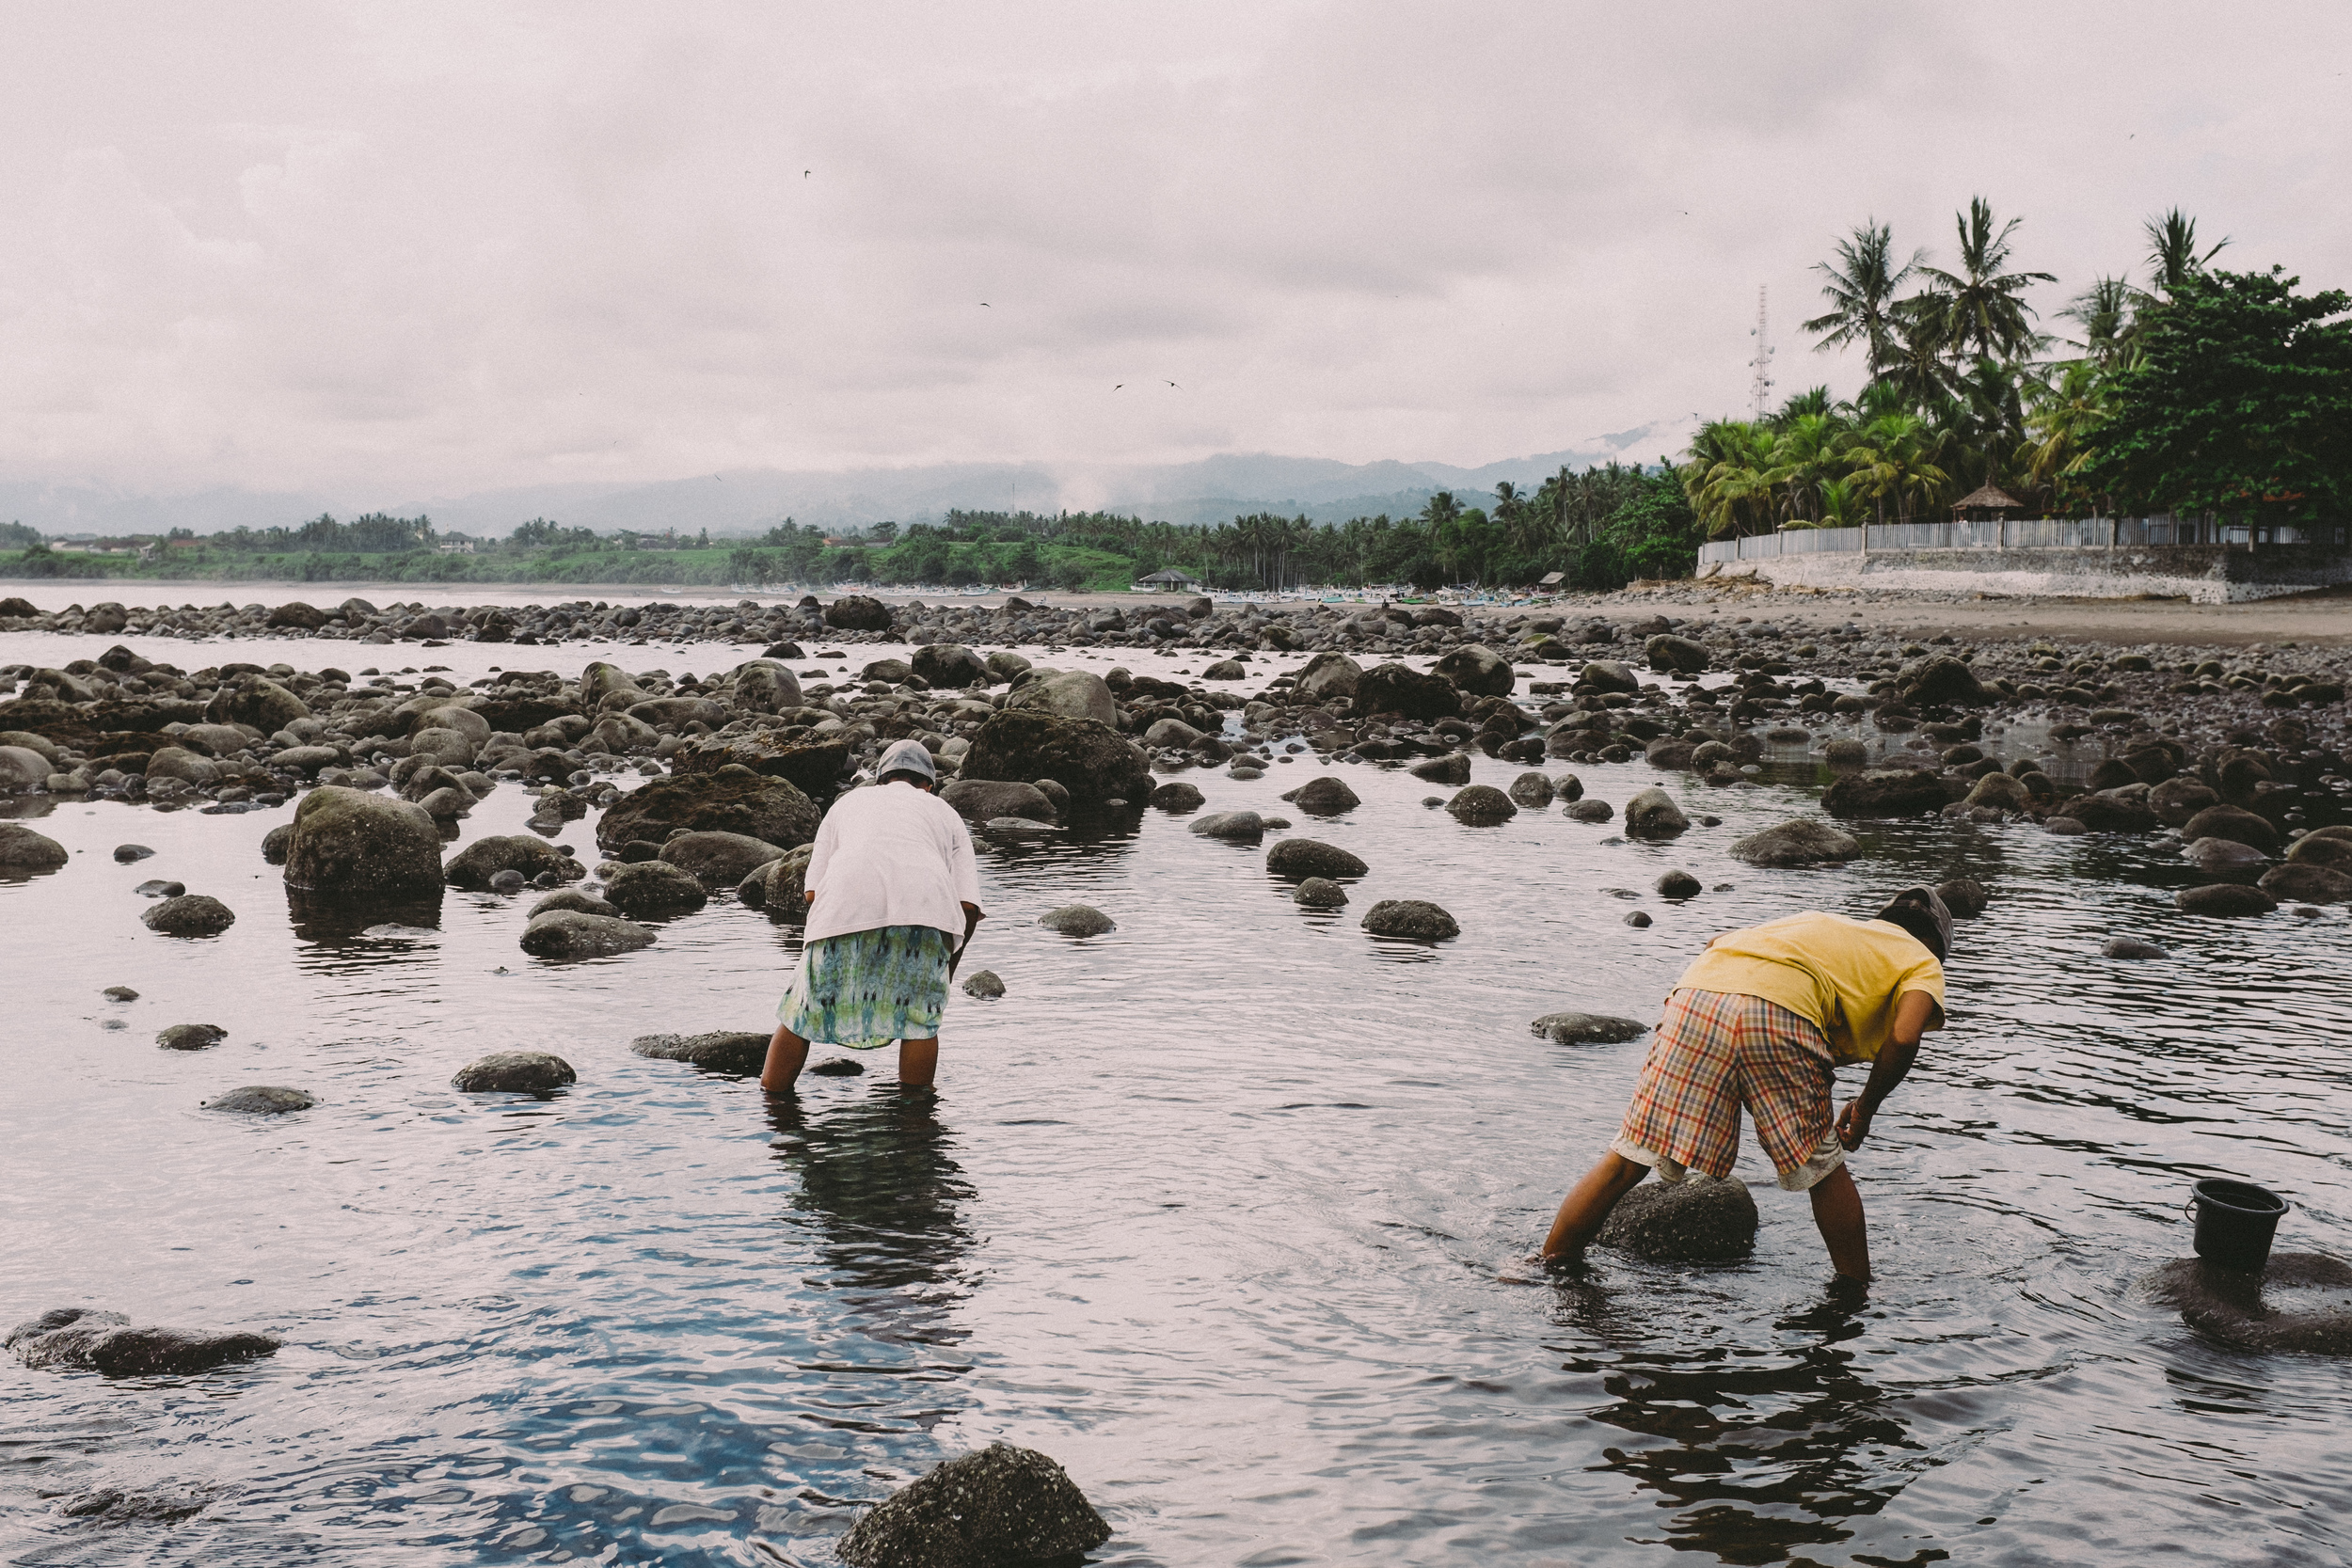 Bali_Indonesia_photo_journalism_shellfish_collecting_global_eyes_media_015.jpg